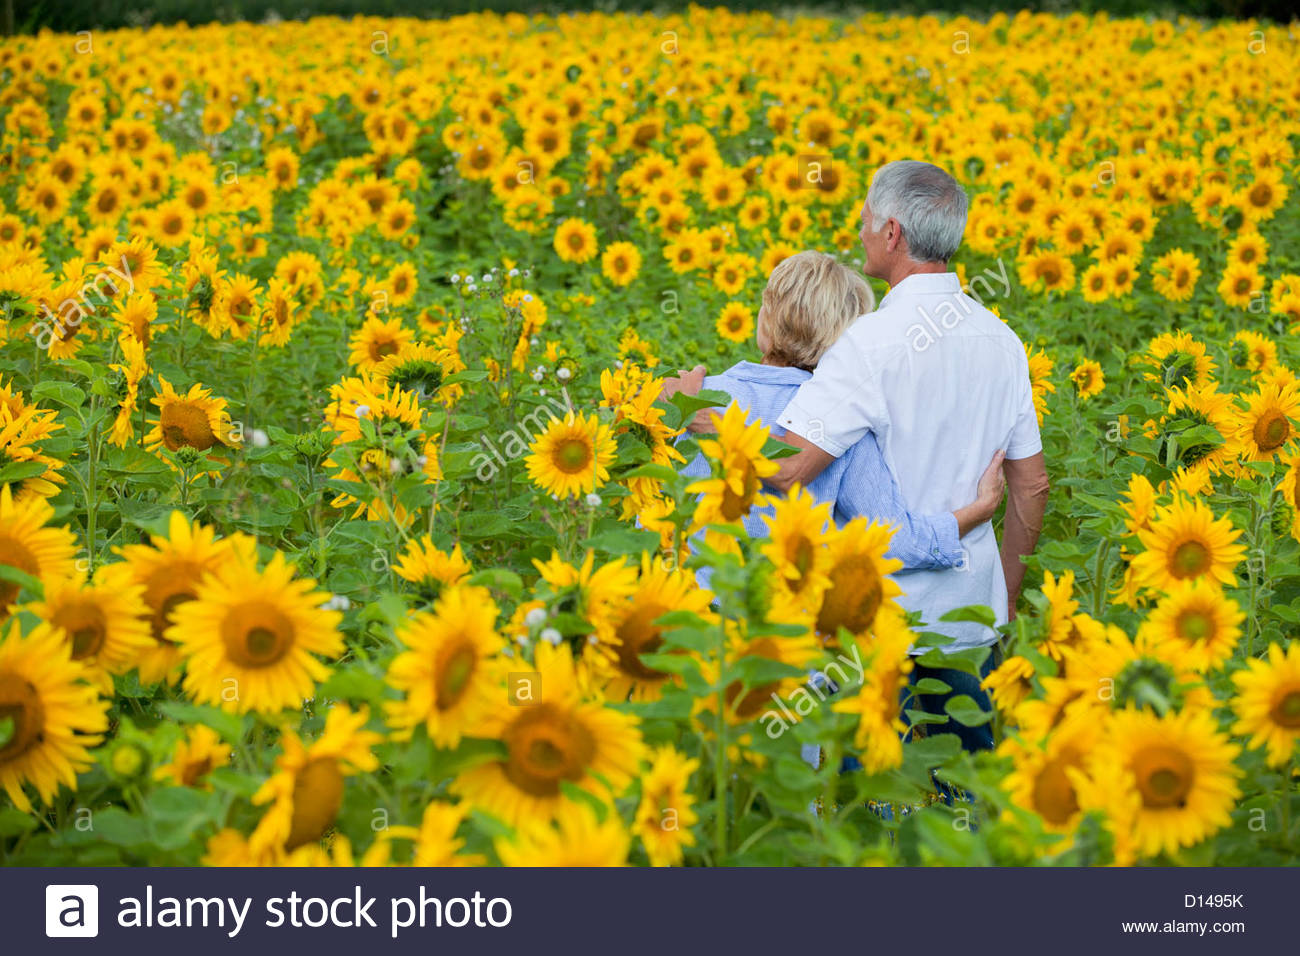 Couple hugging among sunflowers in sunny meadow - Stock Image